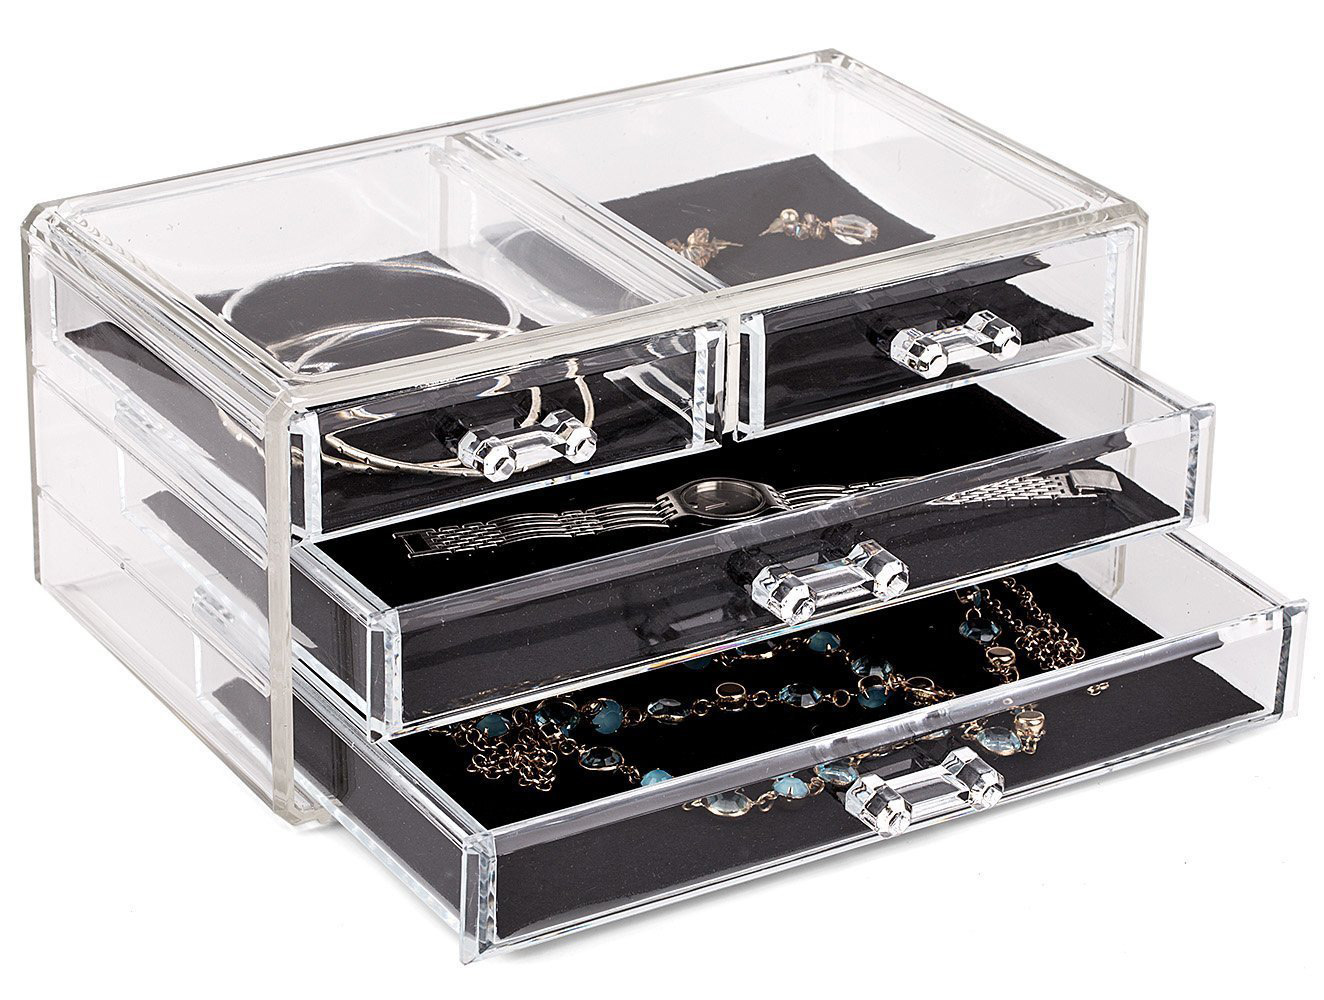 Simple Triple Tier Tray Acrylic Jewelry Box